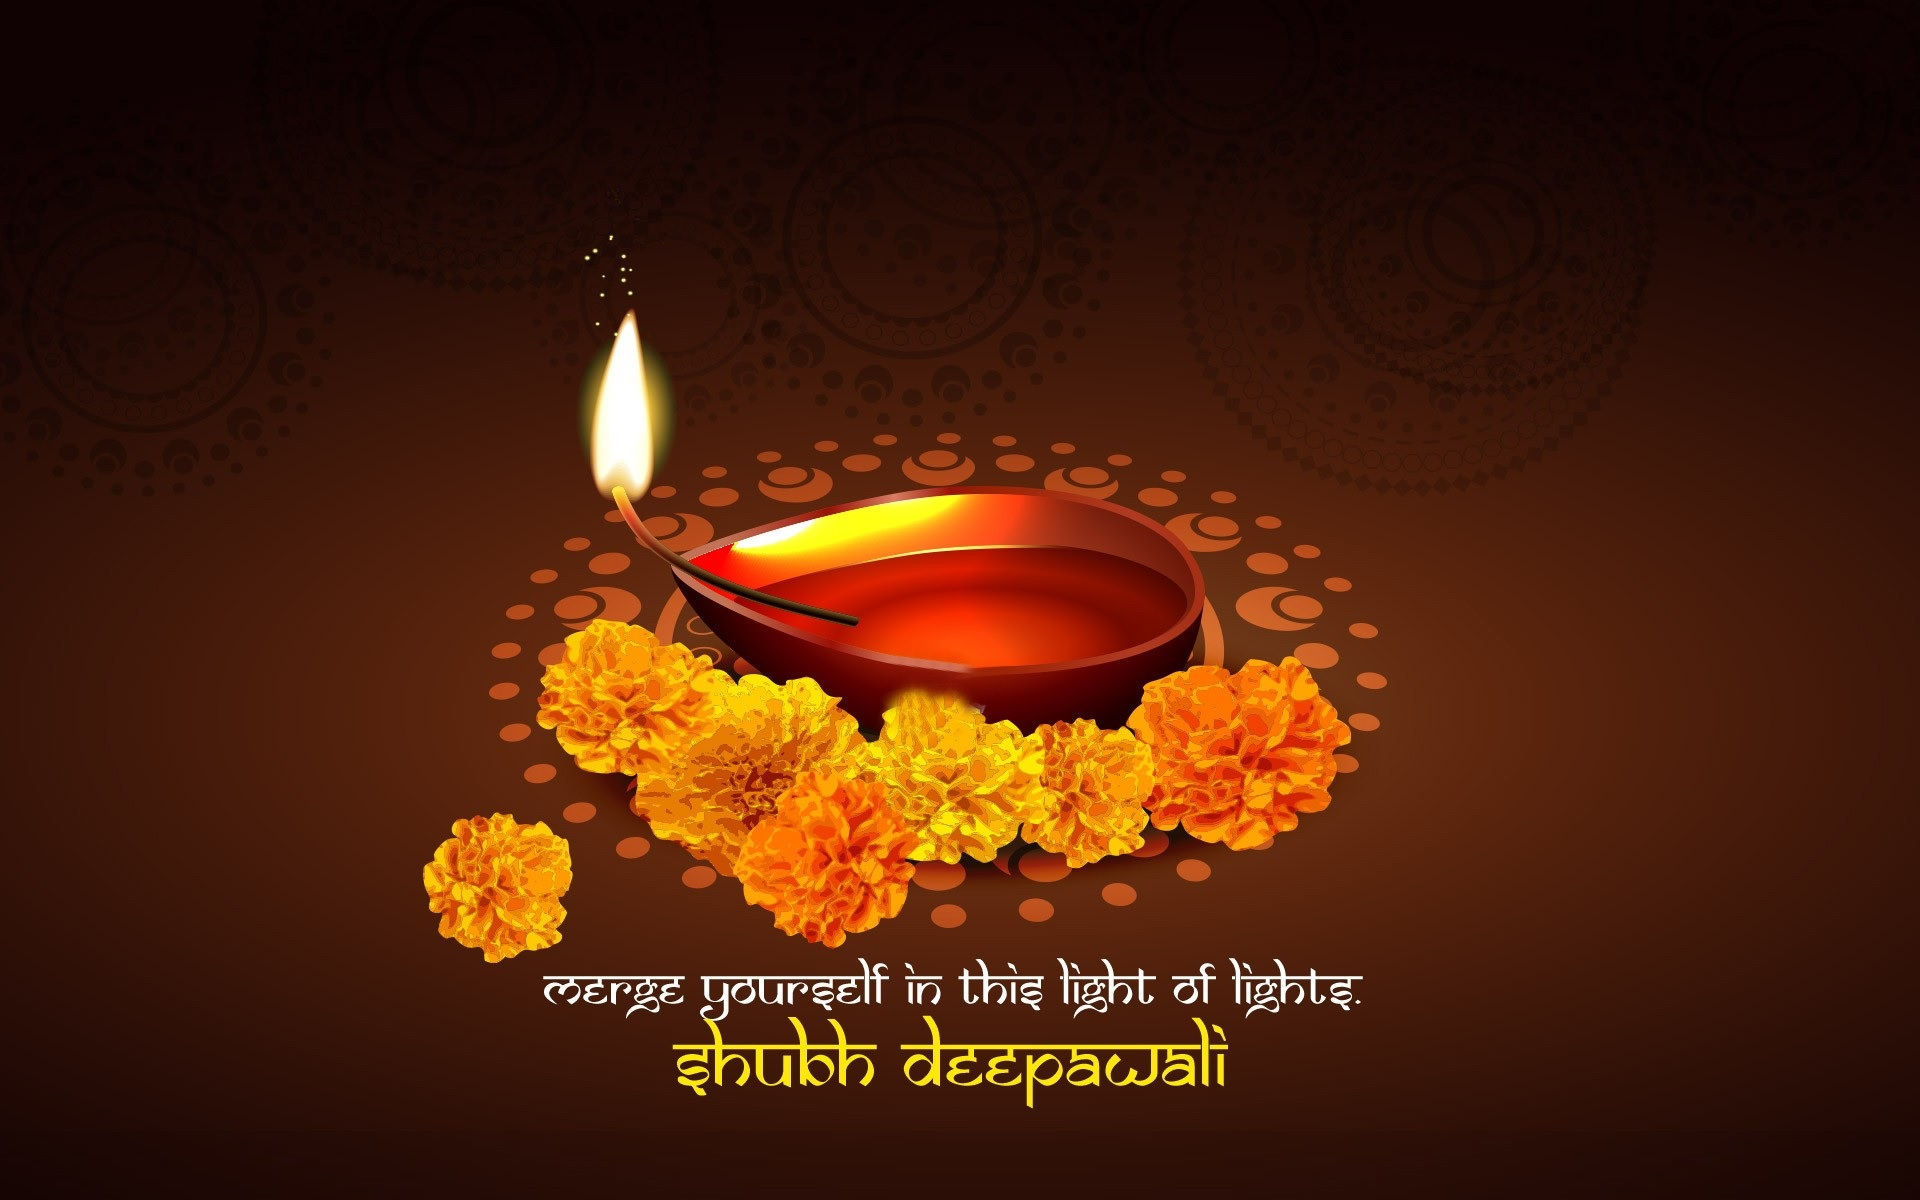 Islamic Quotes In Tamil Wallpapers The Other Diwali Message 2014 Struggle For Hindu Existence